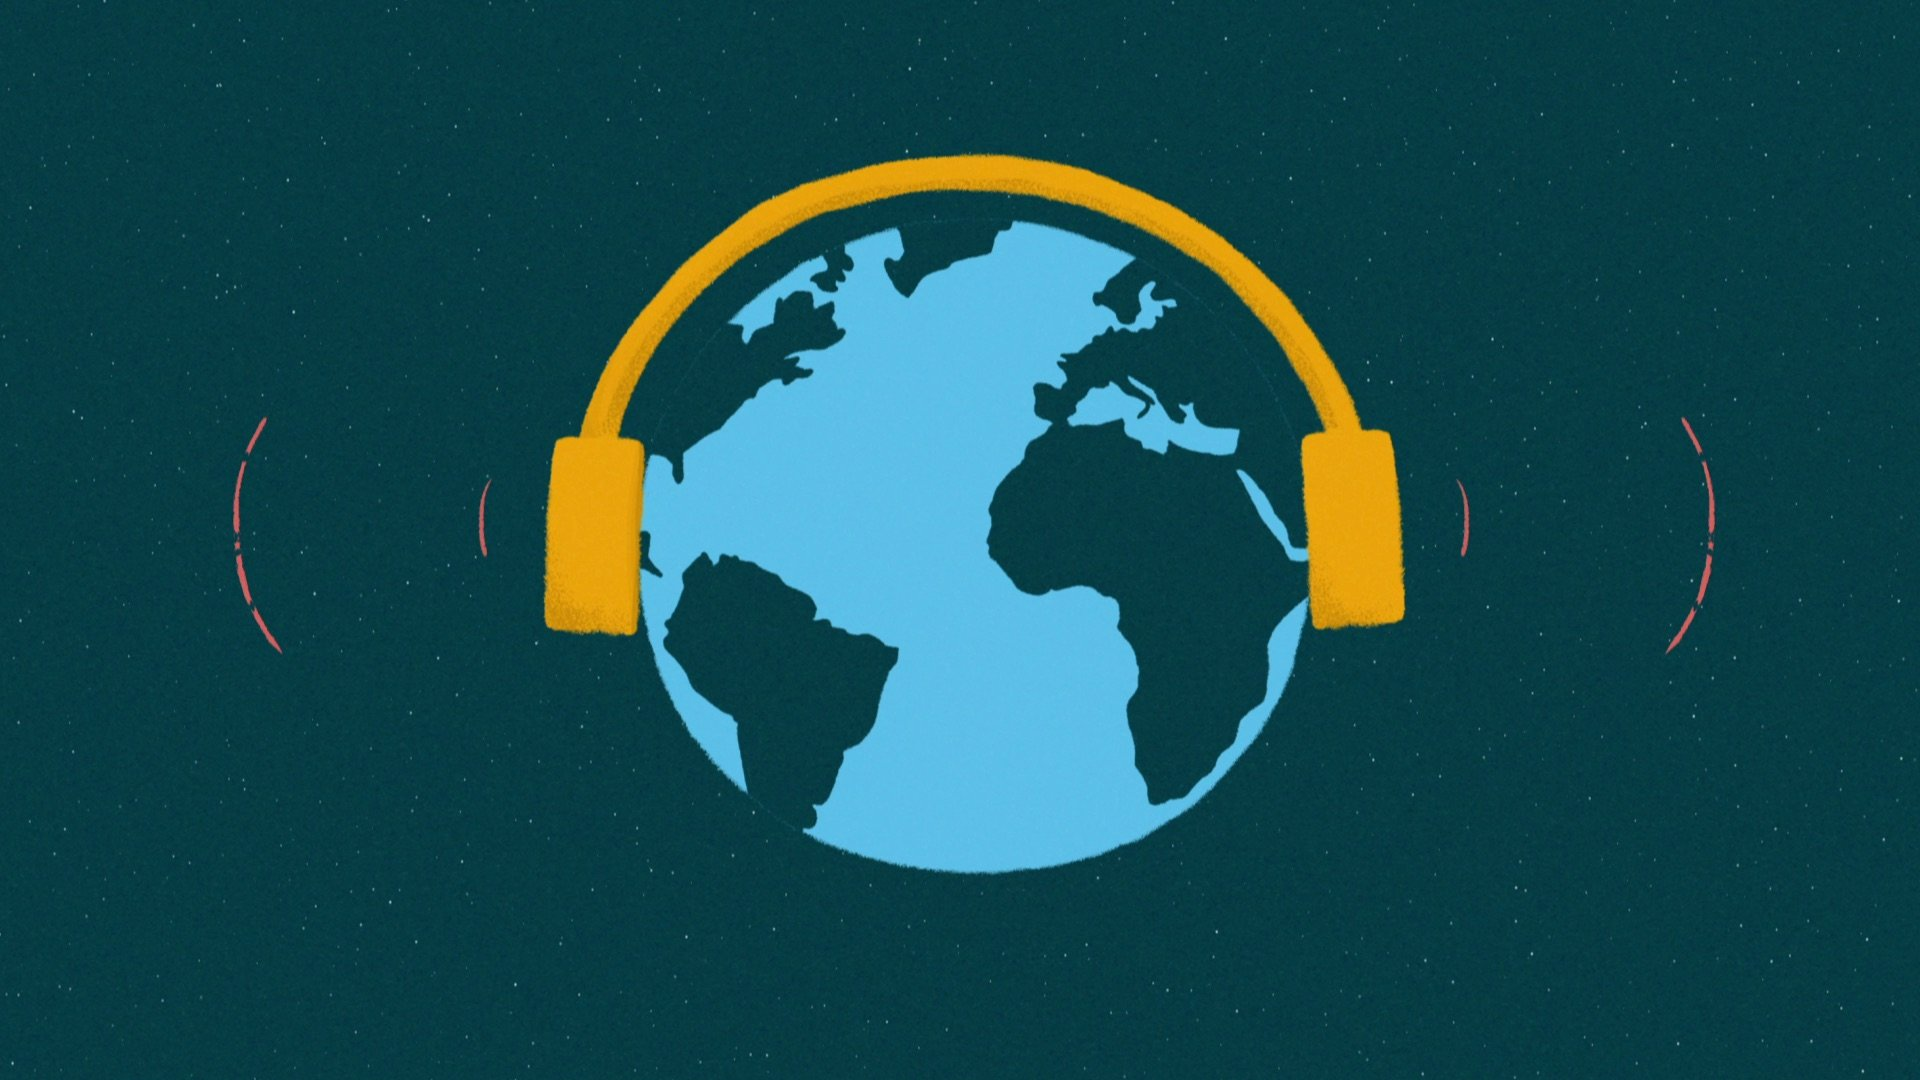 illustration for an explainer video animation for the Incidee app. It shows the world with headphones